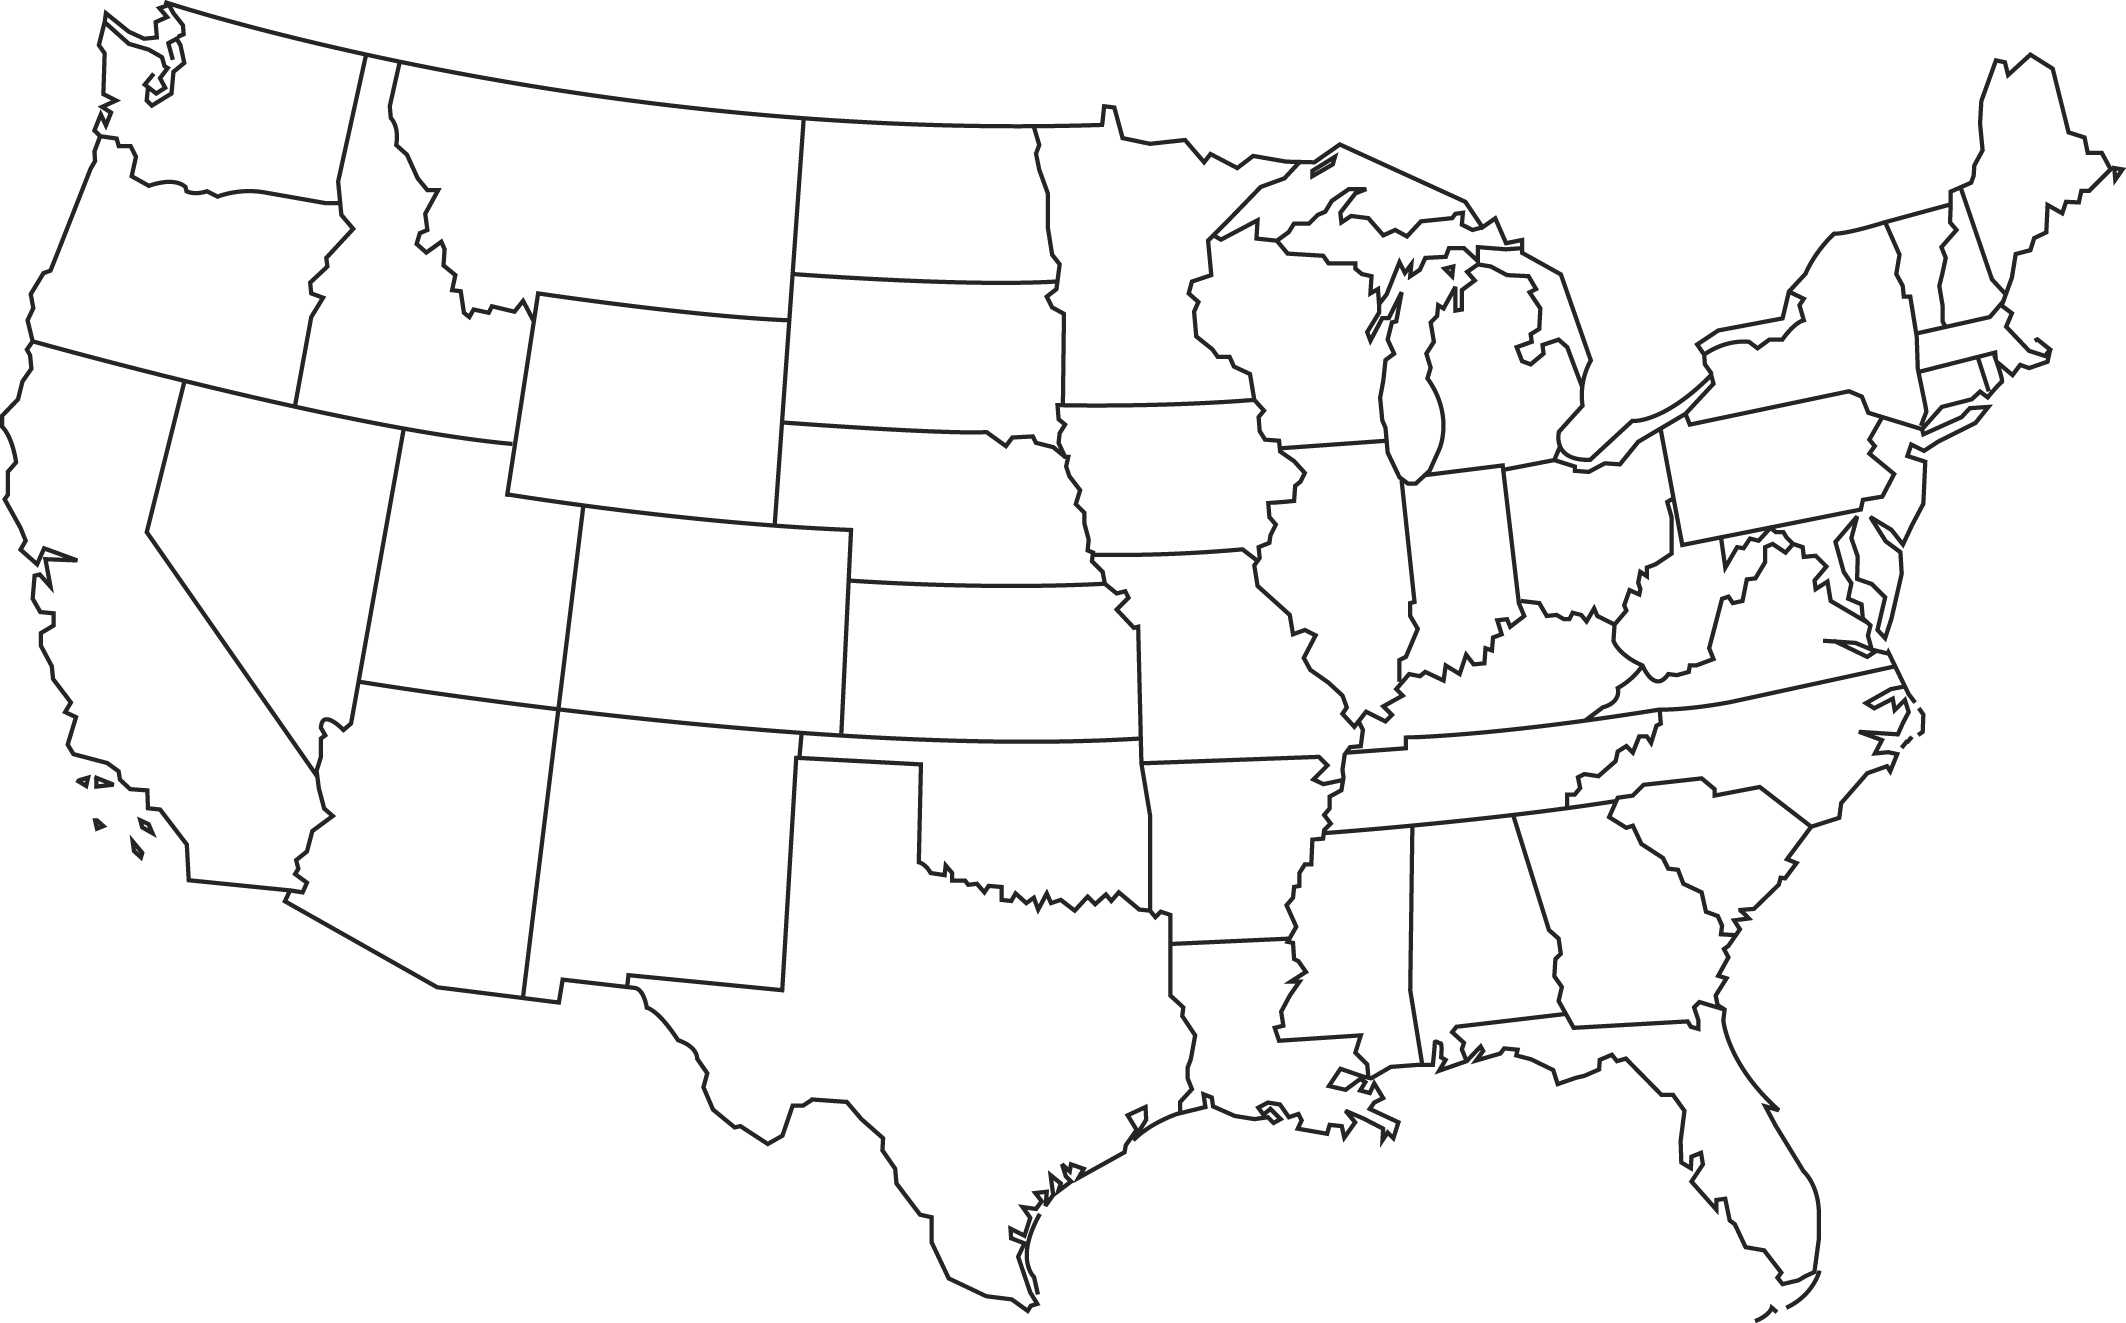 Free United States Of America Map United States Maps - The map of united states of america